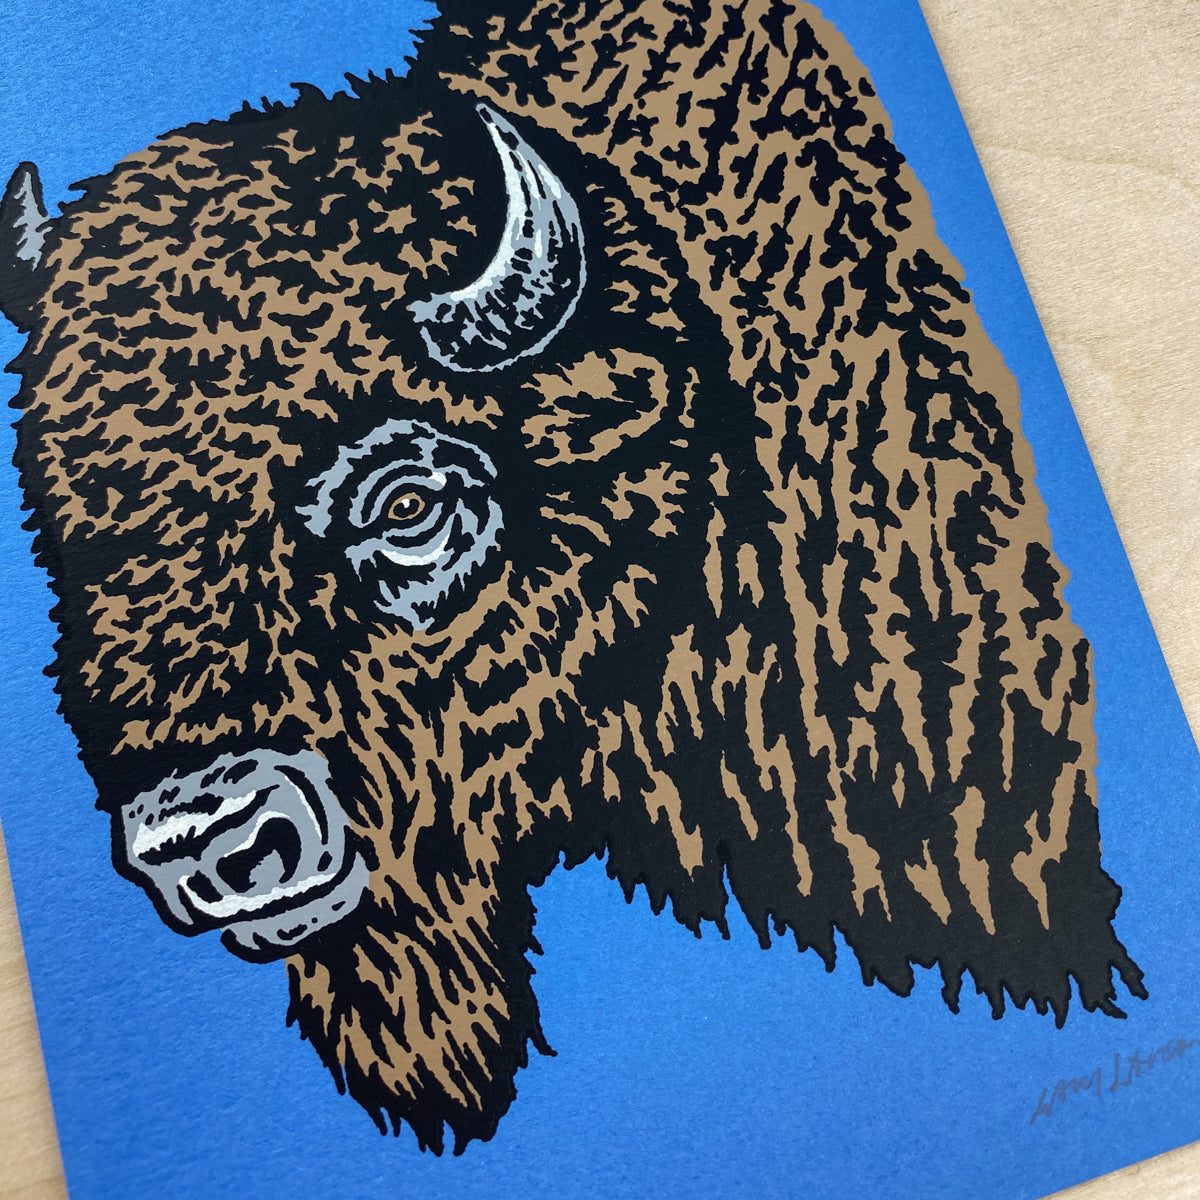 Colorado Bison - Signed 5x7in Print #225